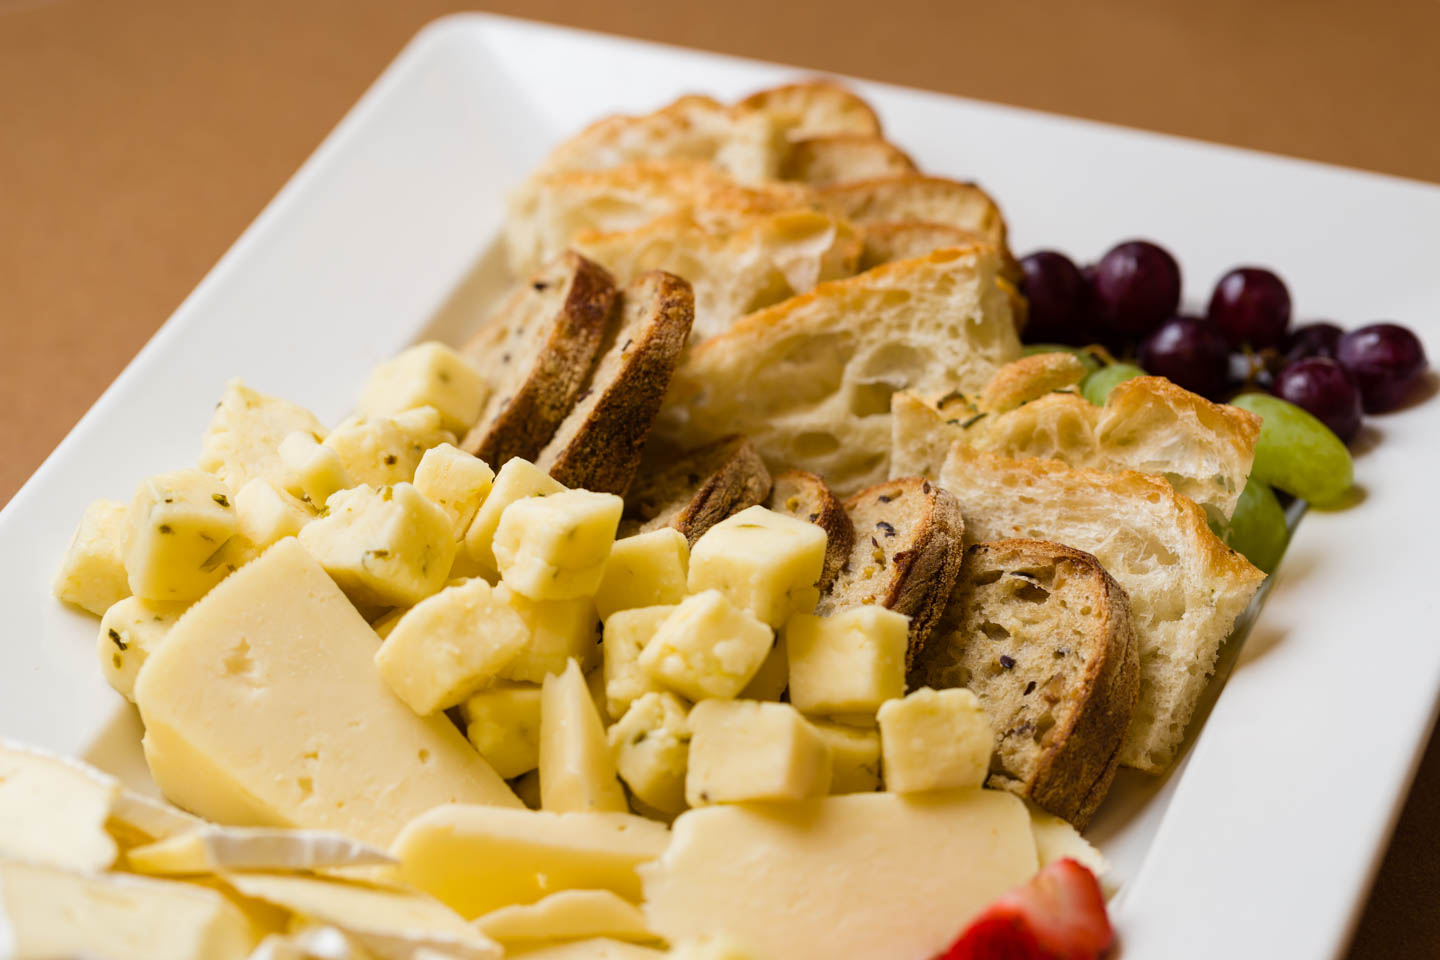 Cheese, Bread, and Grapes